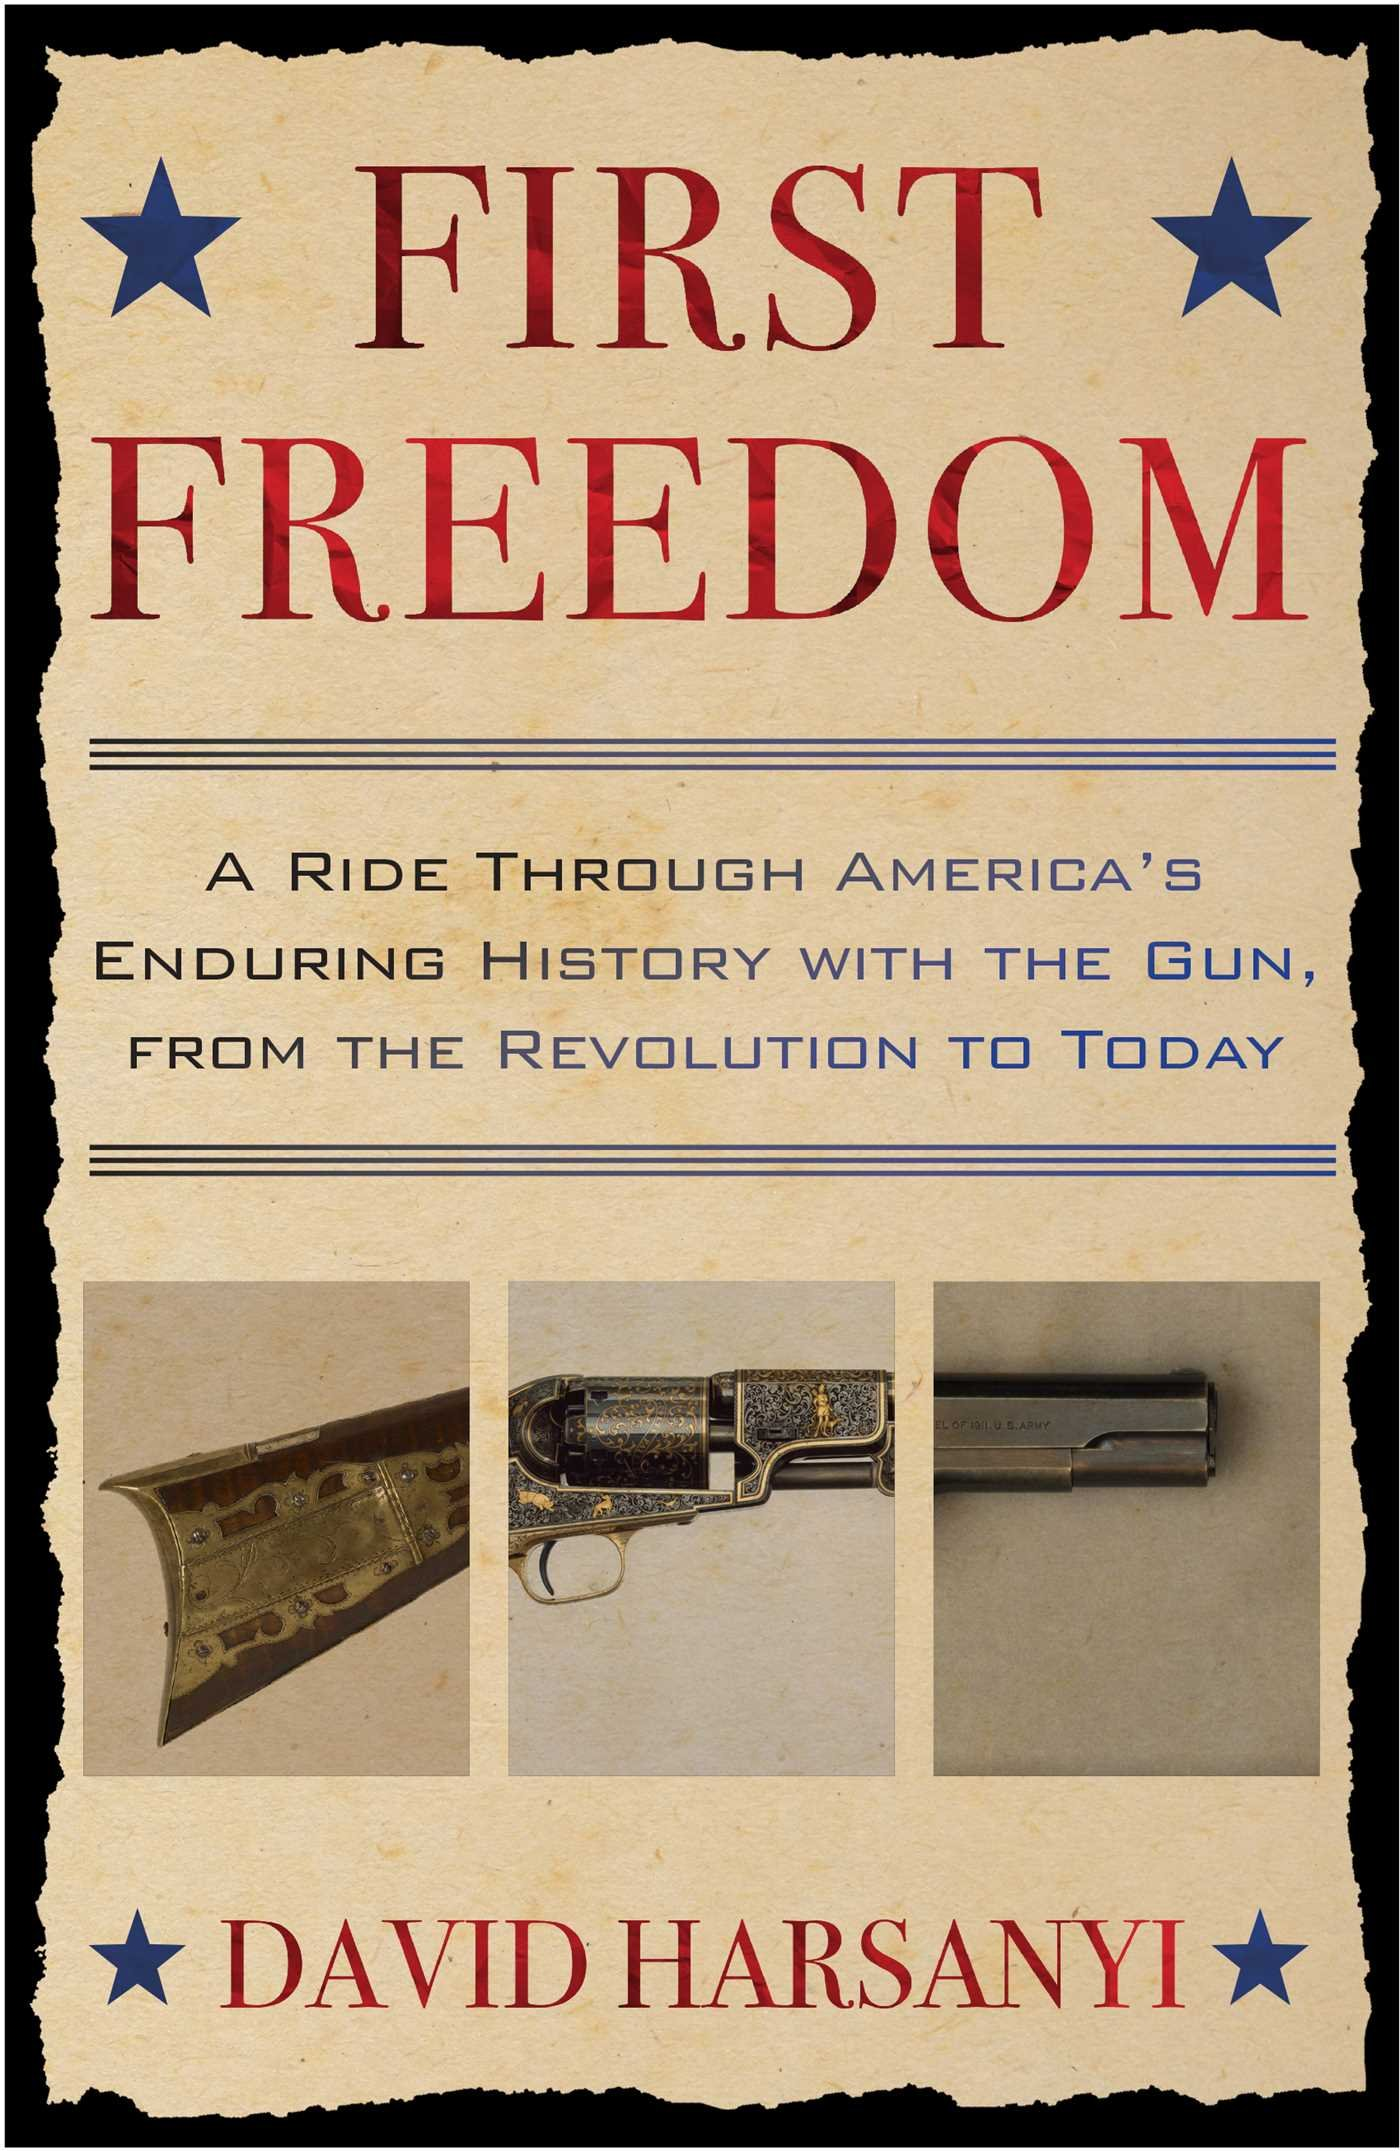 First Freedom: A Ride Through America's Enduring History with the Gun, From the Revolution to Today